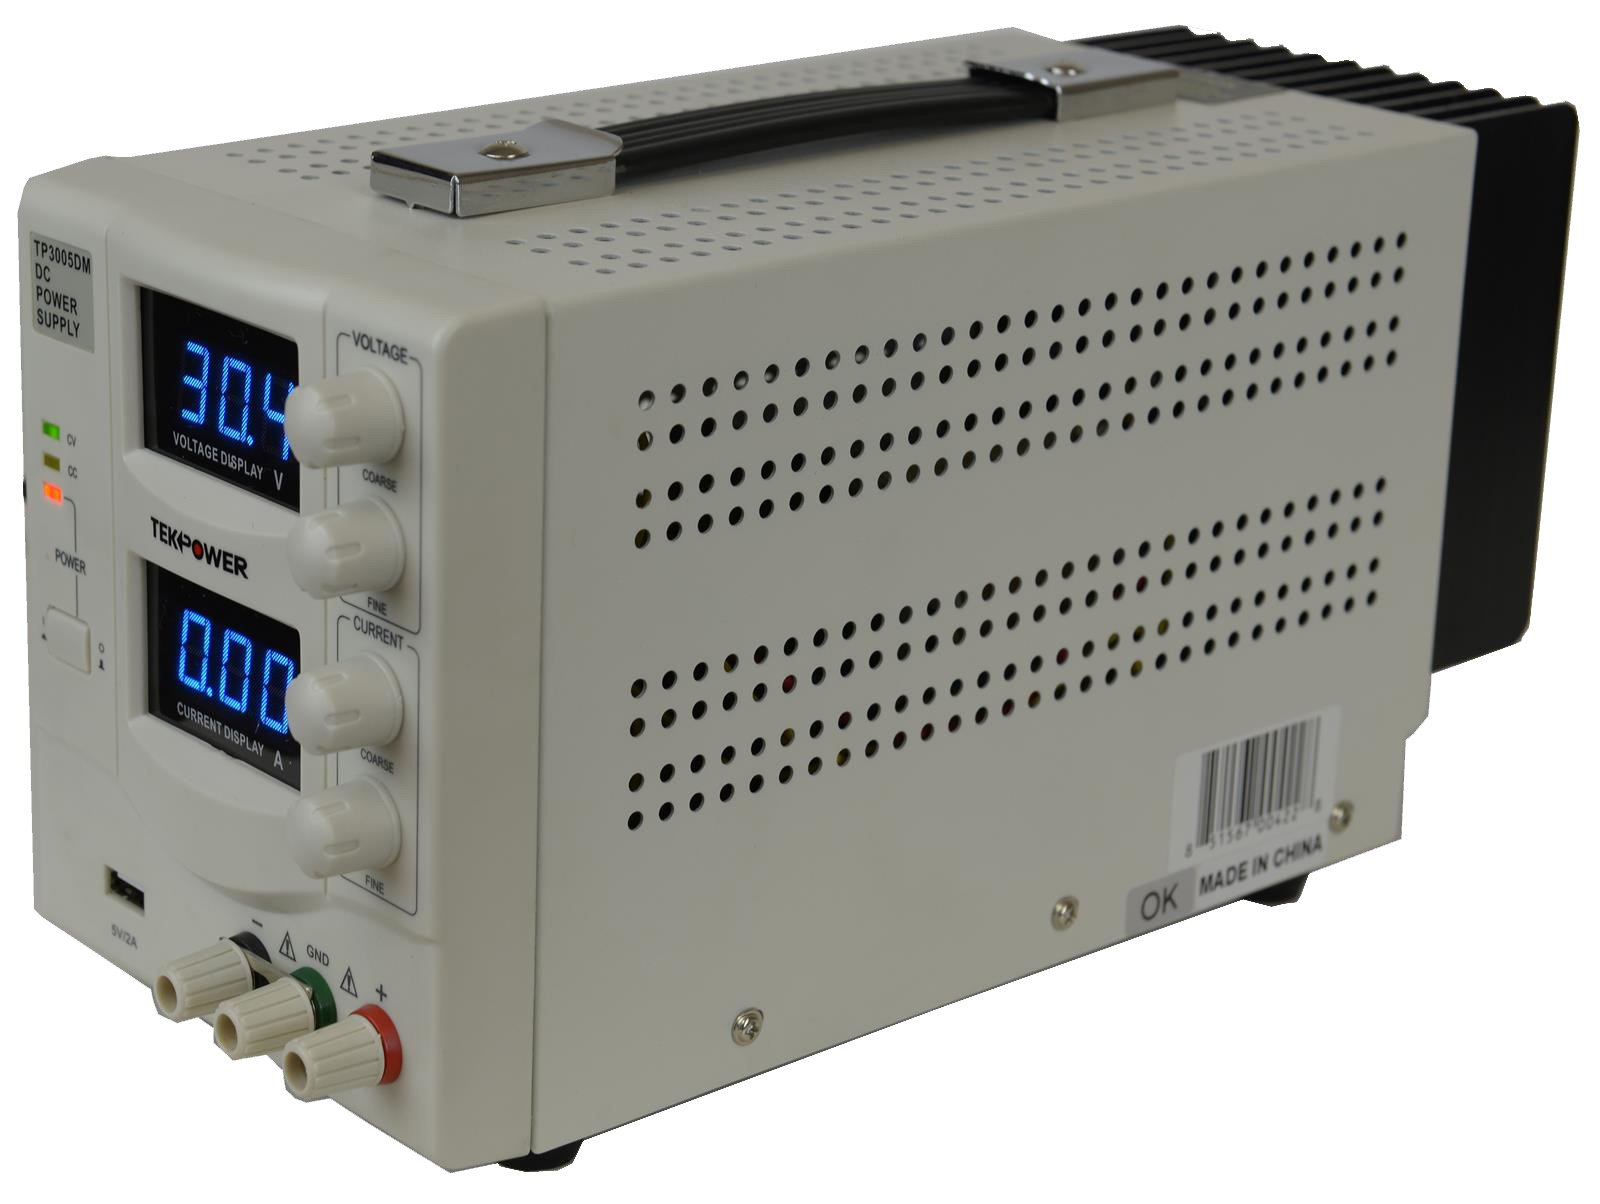 TekPower TP3005DM Linear Adjustable Digital DC Power Supply 30V 5A with a 5V/2A USB Port,Lab Grade, Super Clean and Quiet by Tekpower (Image #3)